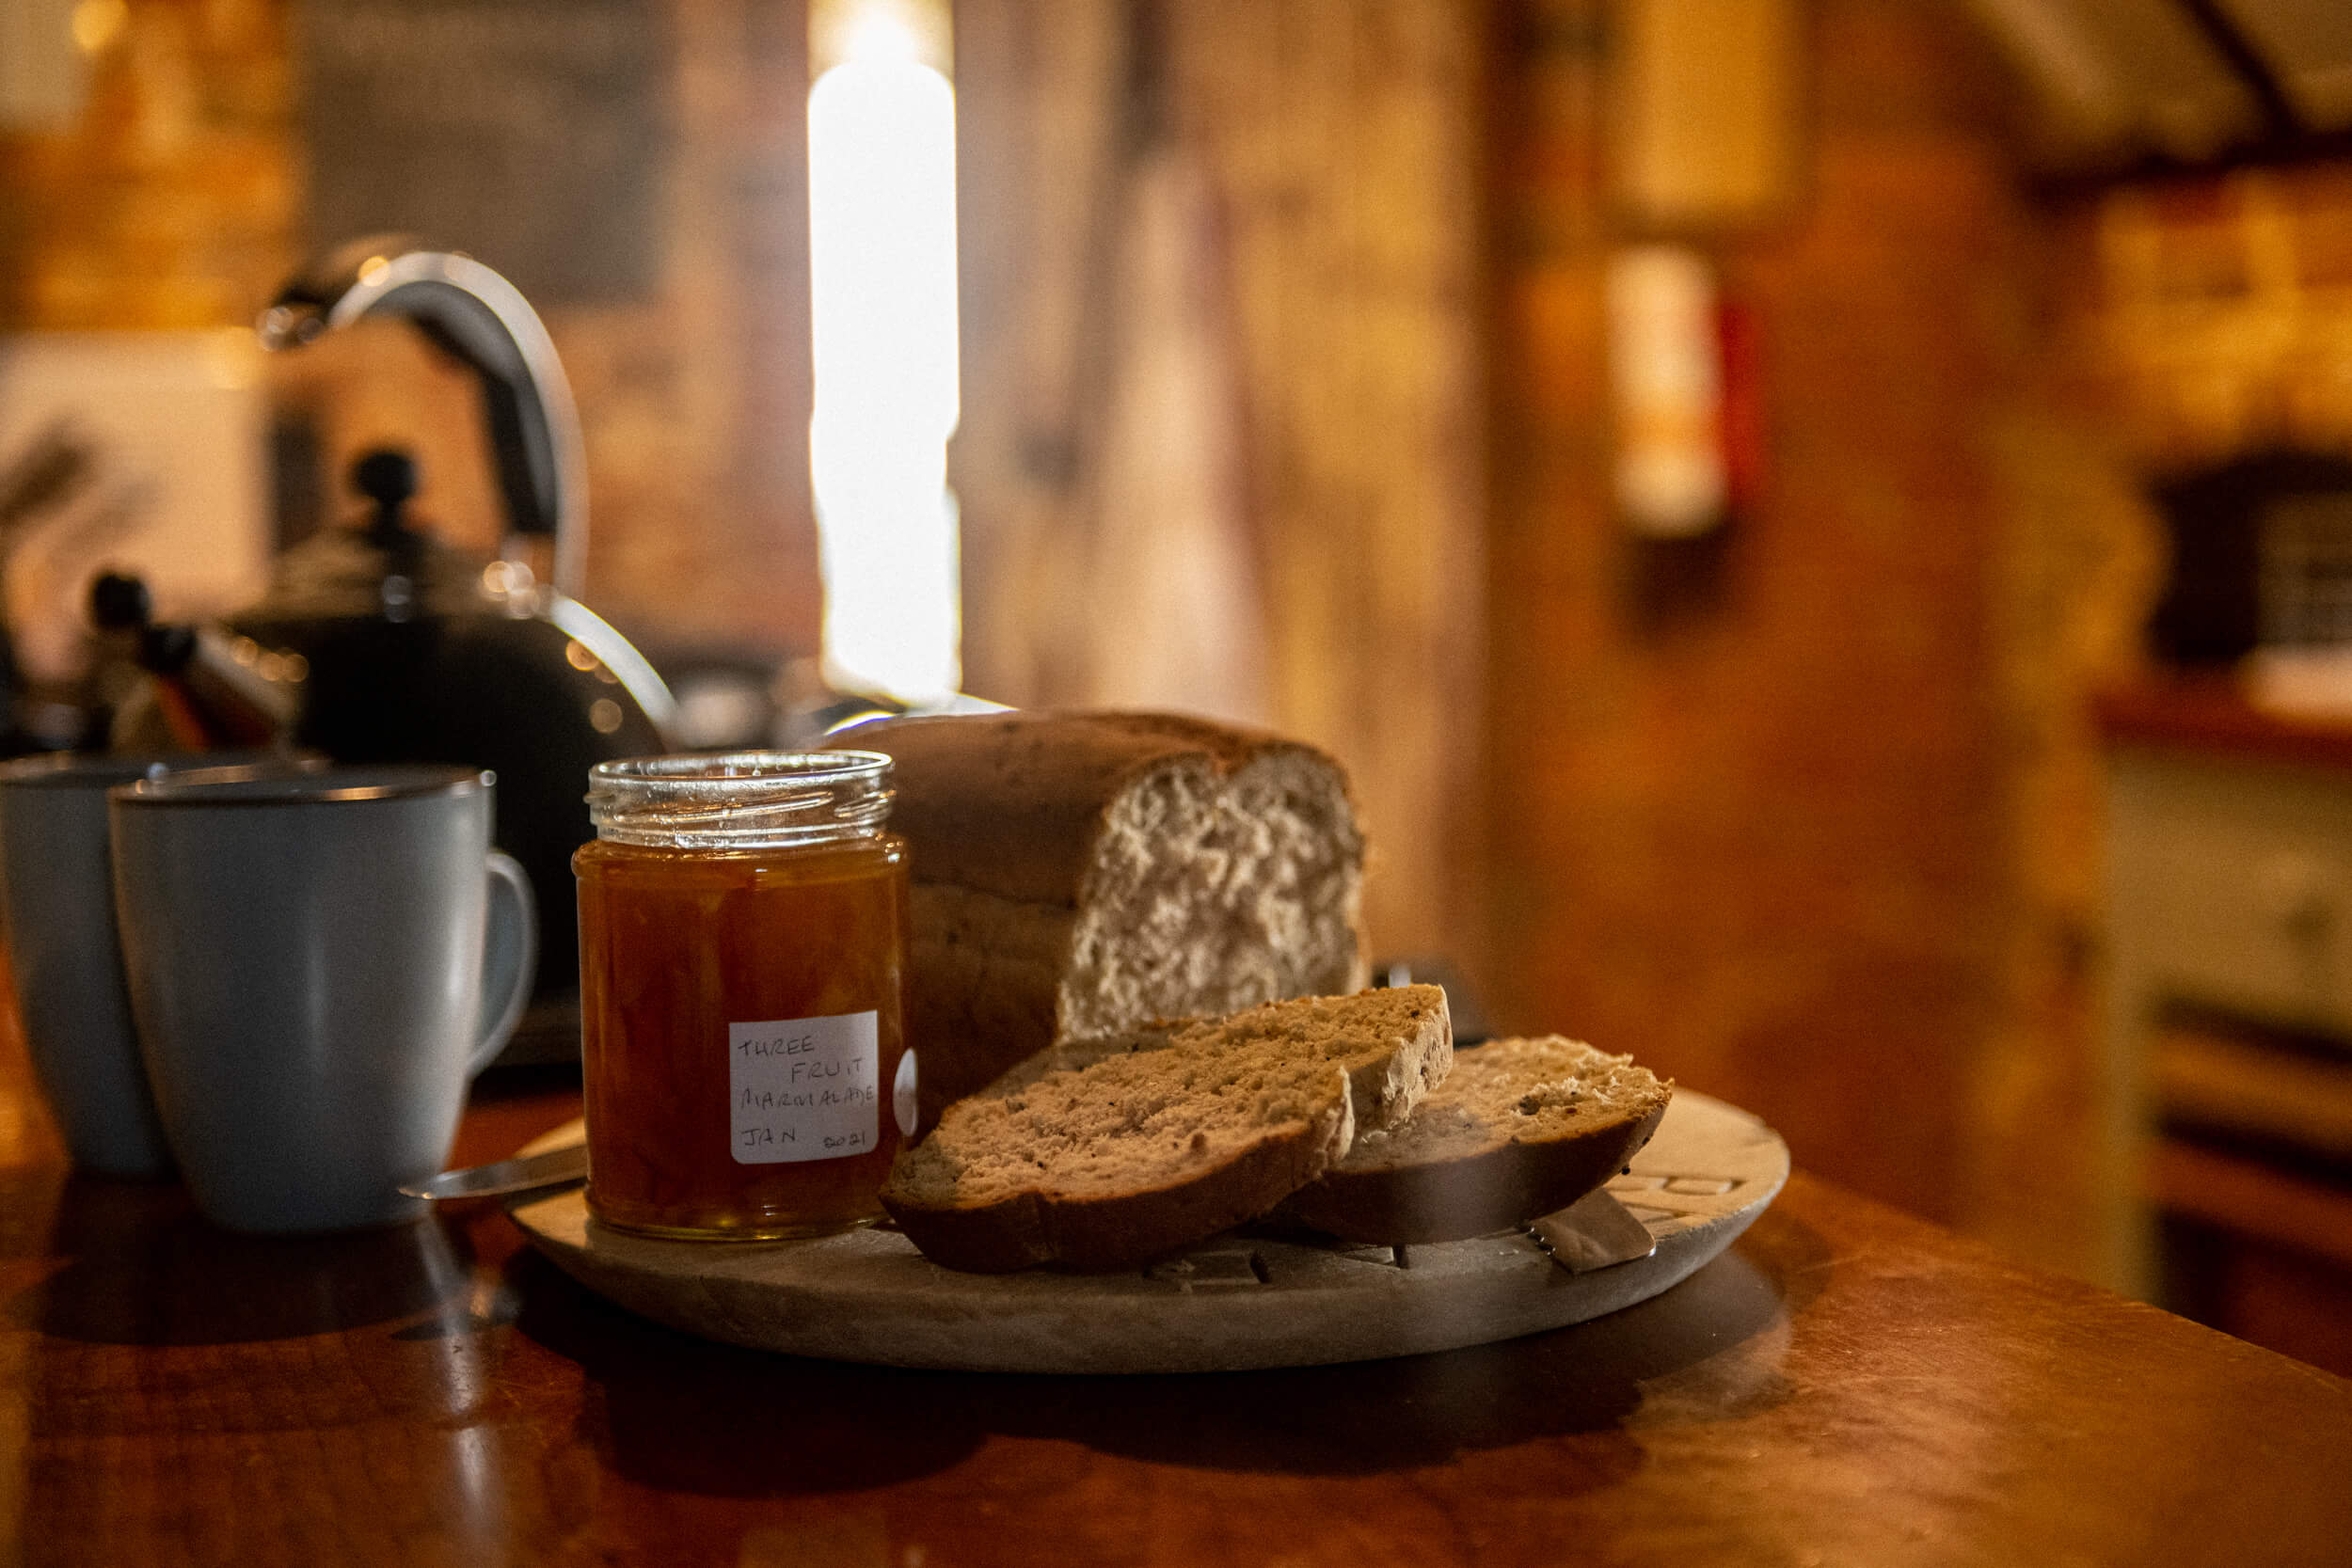 Bread and homemade jam